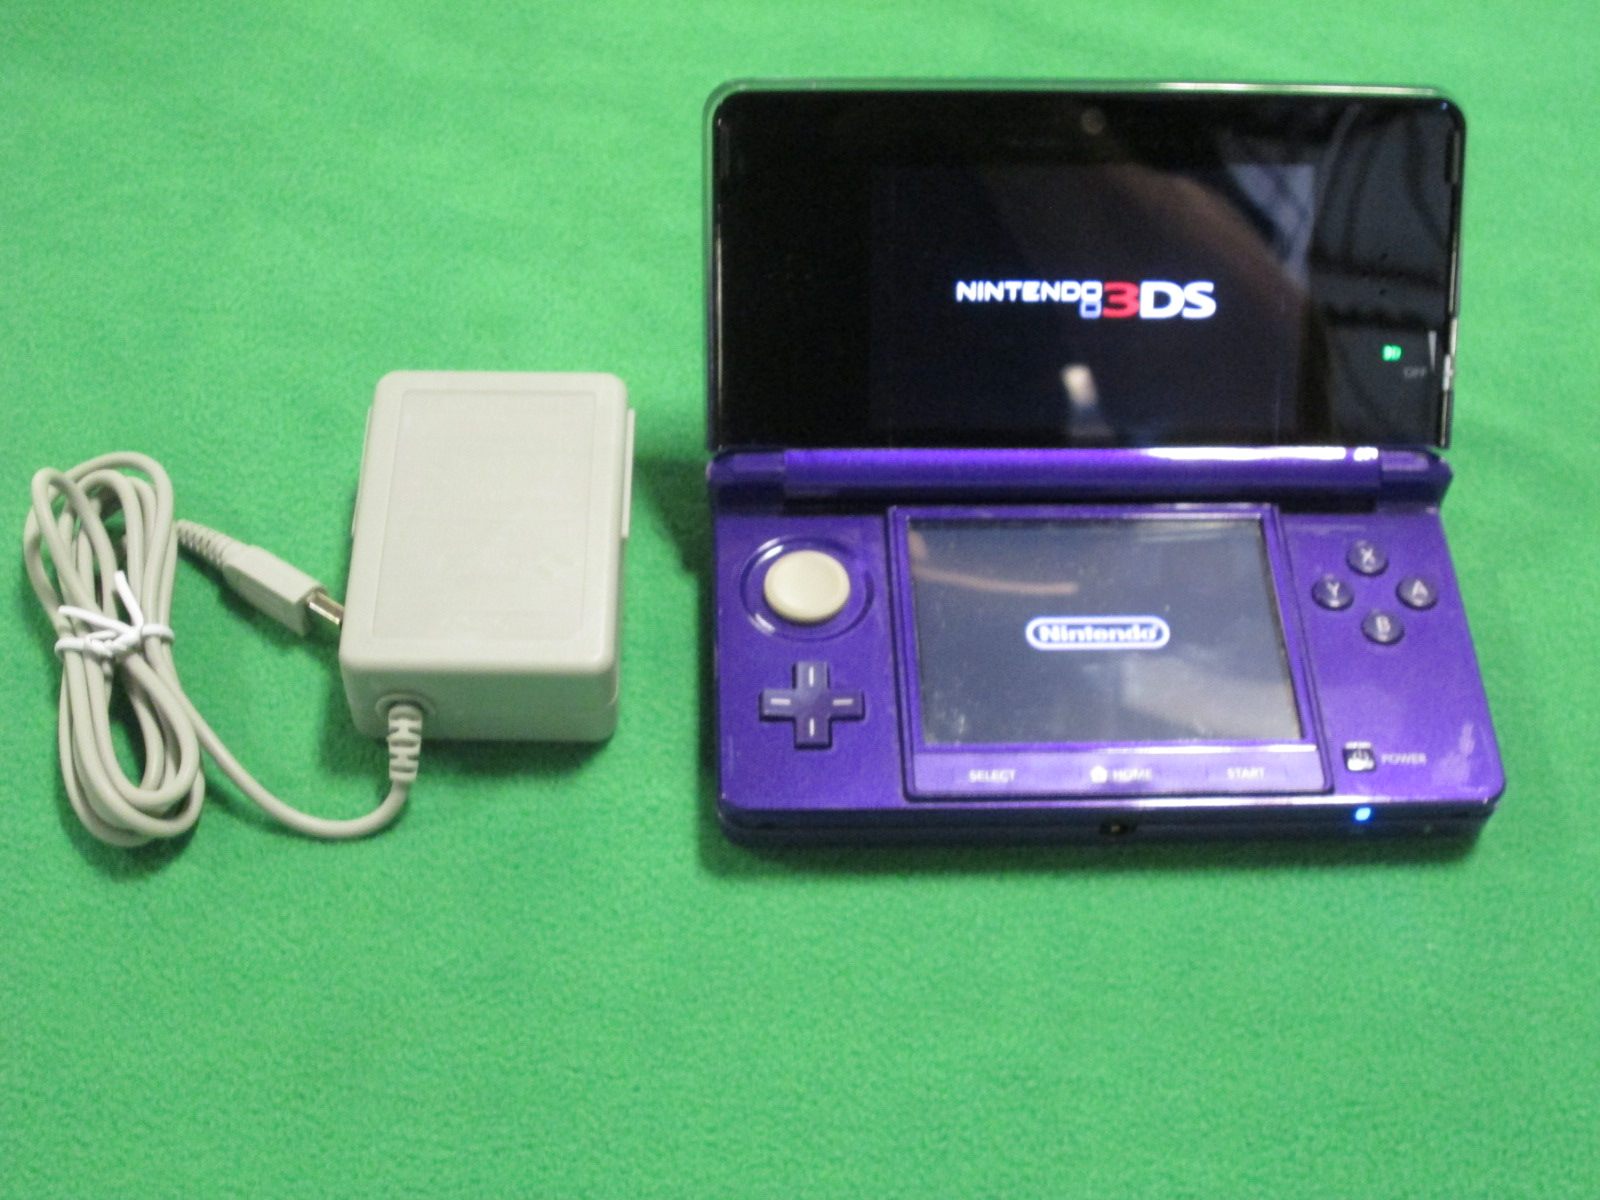 Nintendo 3DS Midnight Purple Nintendo 3DS